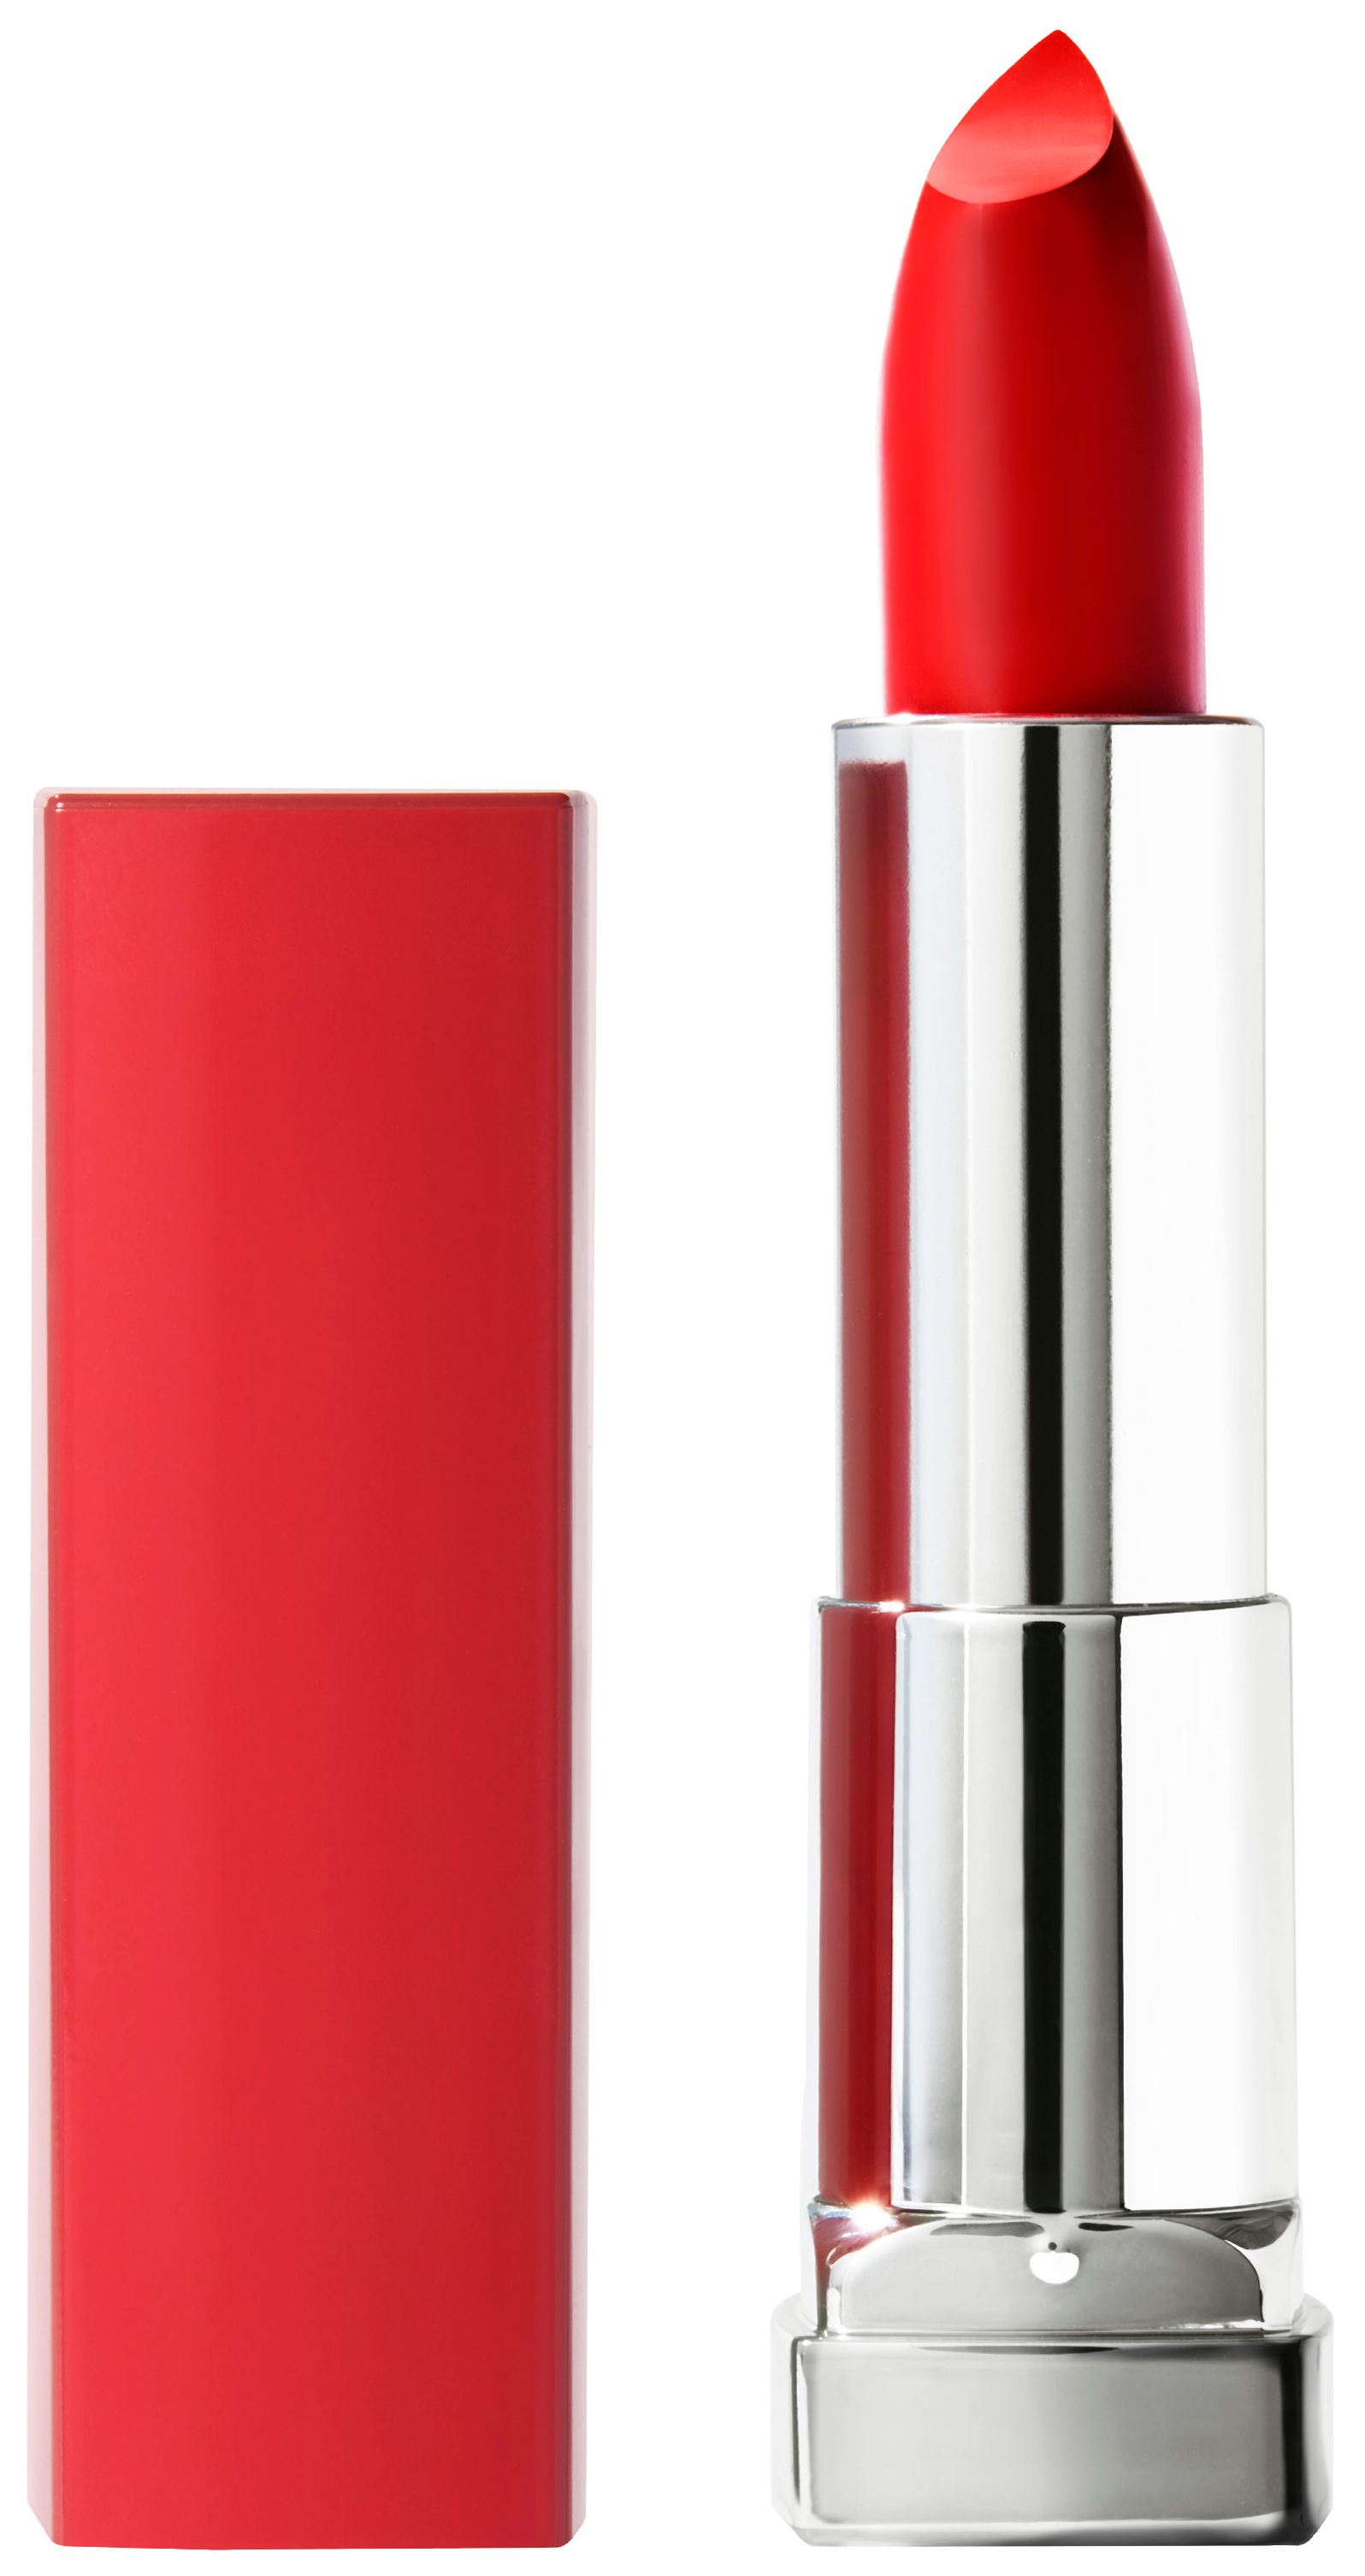 Помада Maybelline Color Sensational Made for all Lipstick 382 Red For Me 5 г